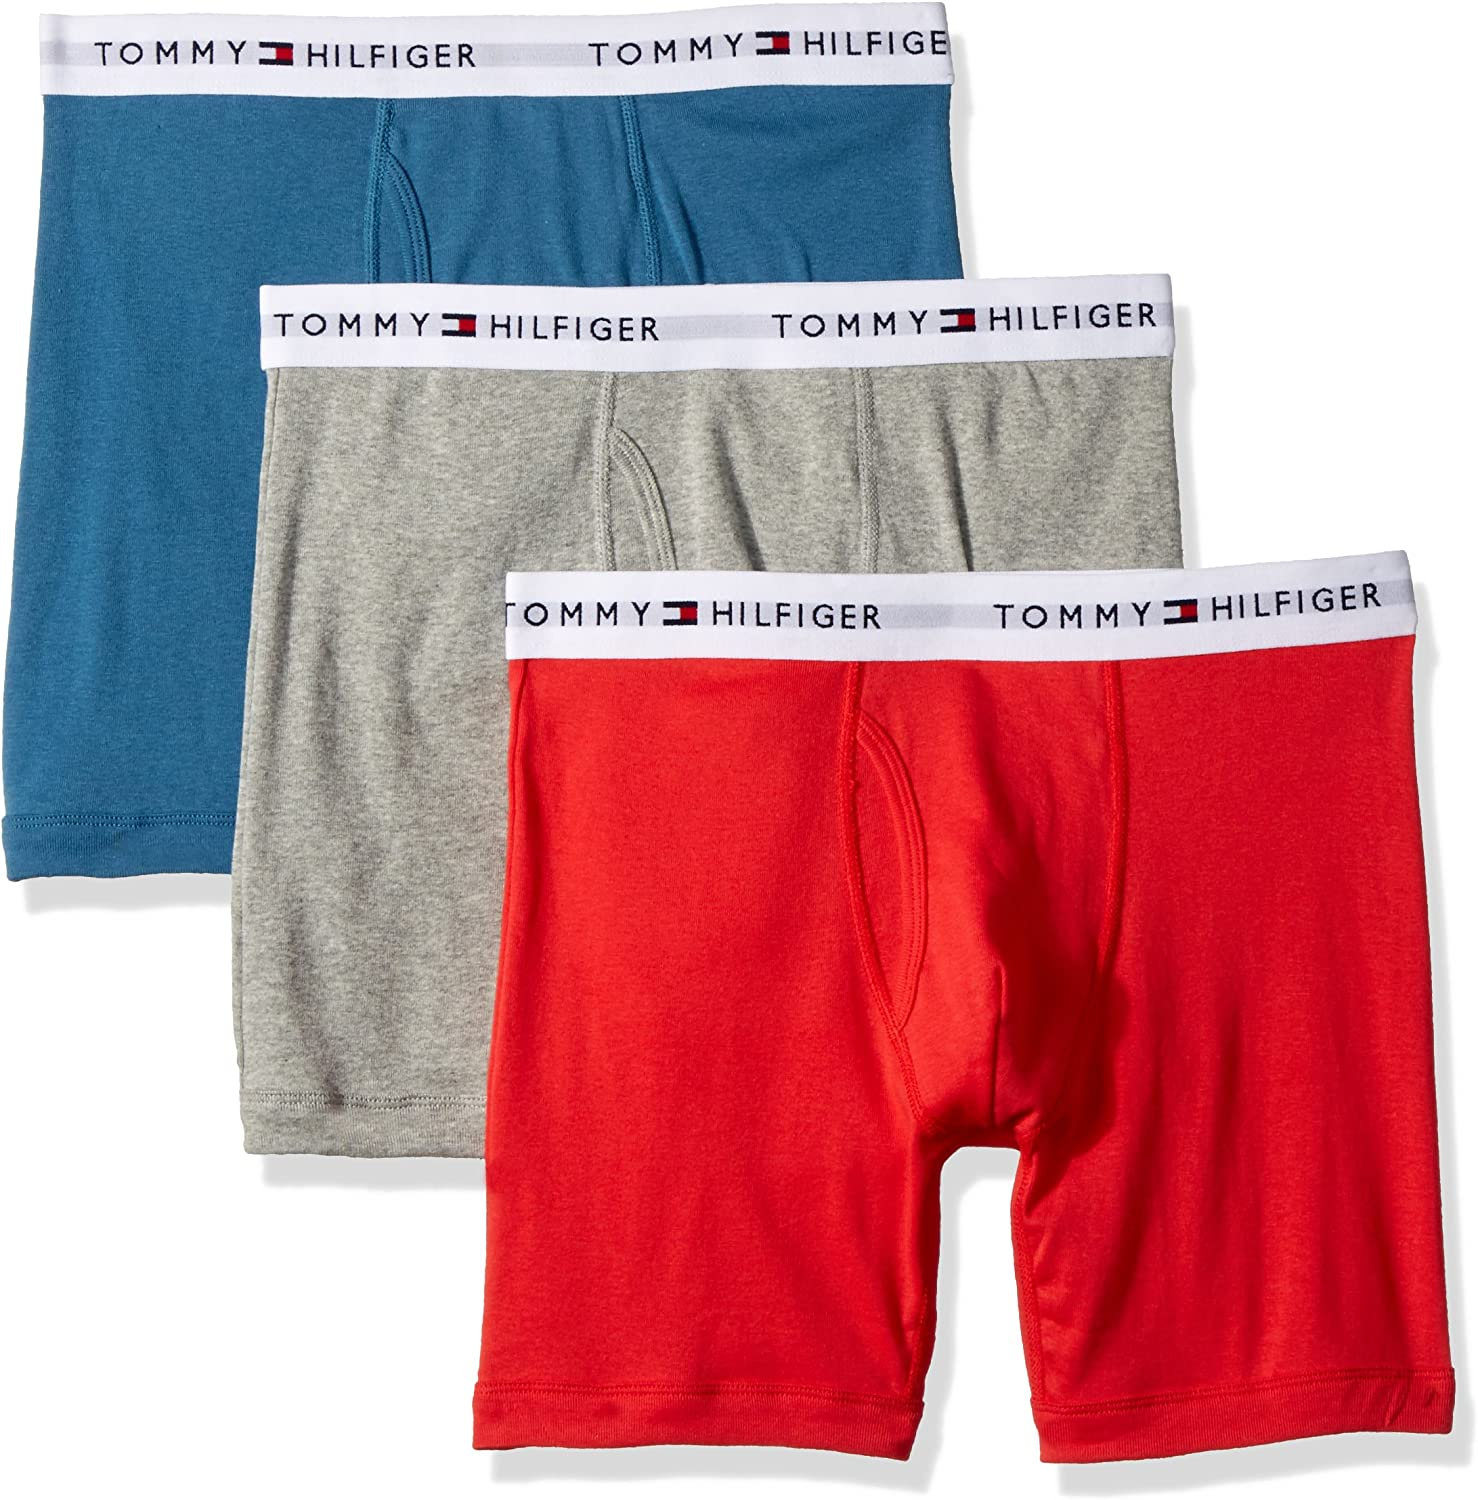 Tommy Hilfiger Hombres 3-Pack Cotton Boxer Brief Calzones ...